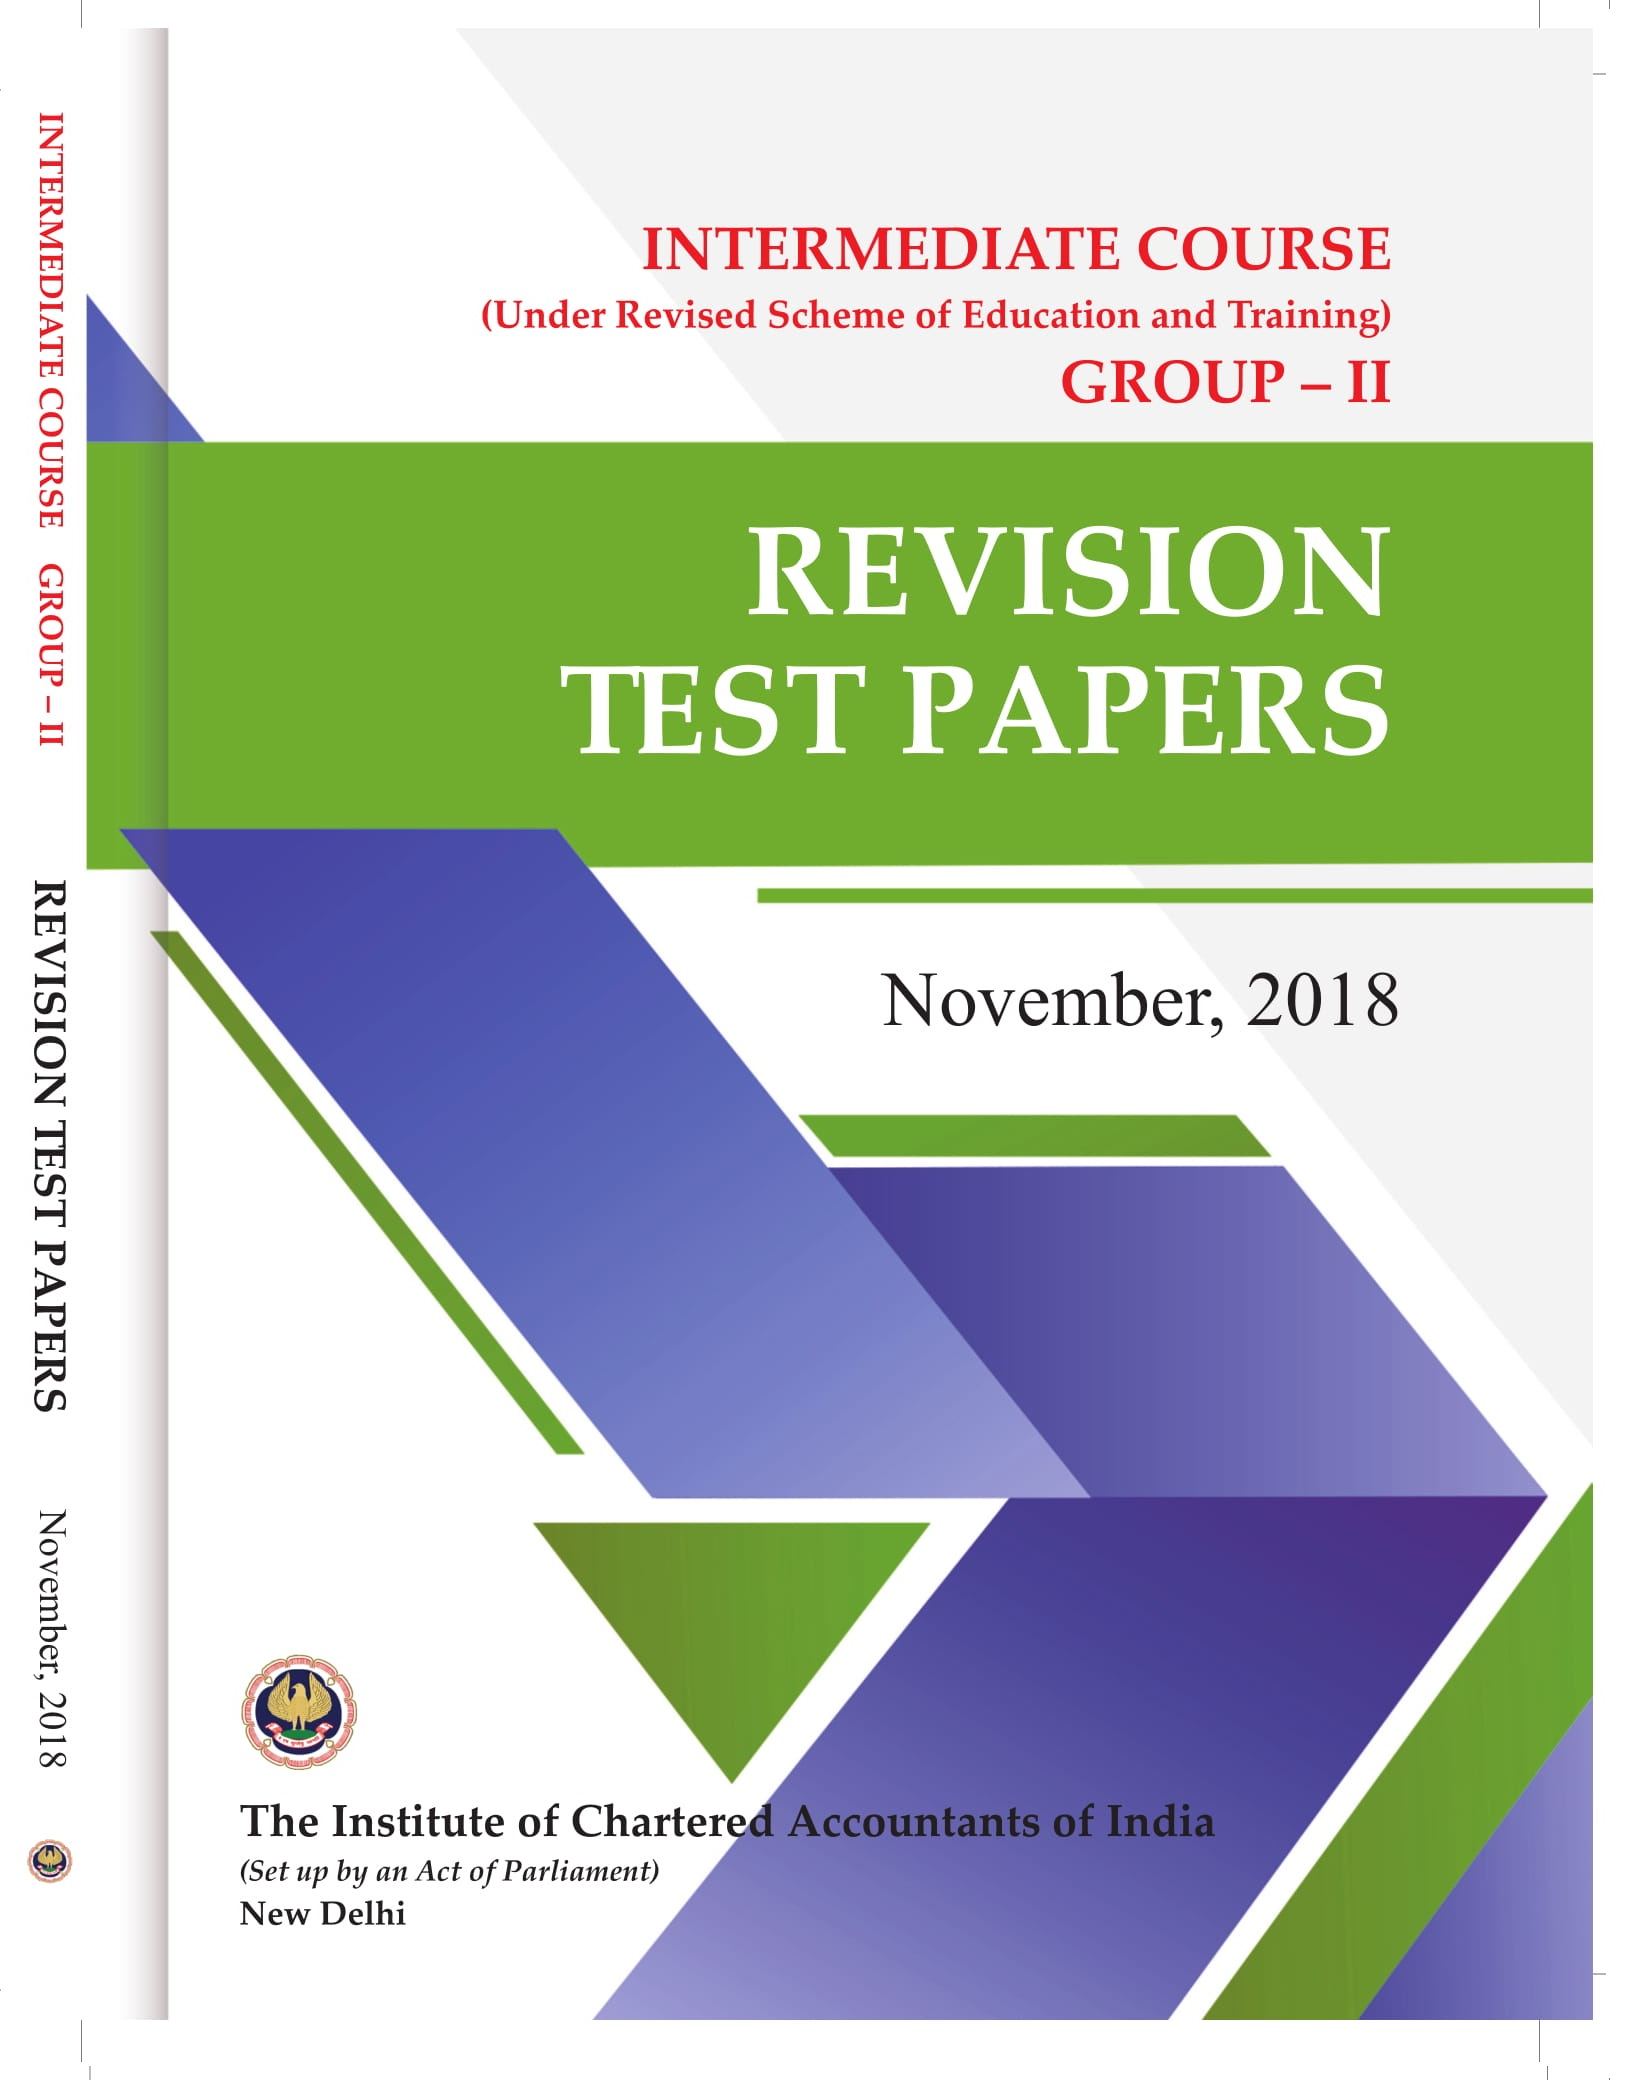 Intermediate Course (Under Revised Scheme of Education and Training) - Group - II - Revision Test Papers - November, 2018